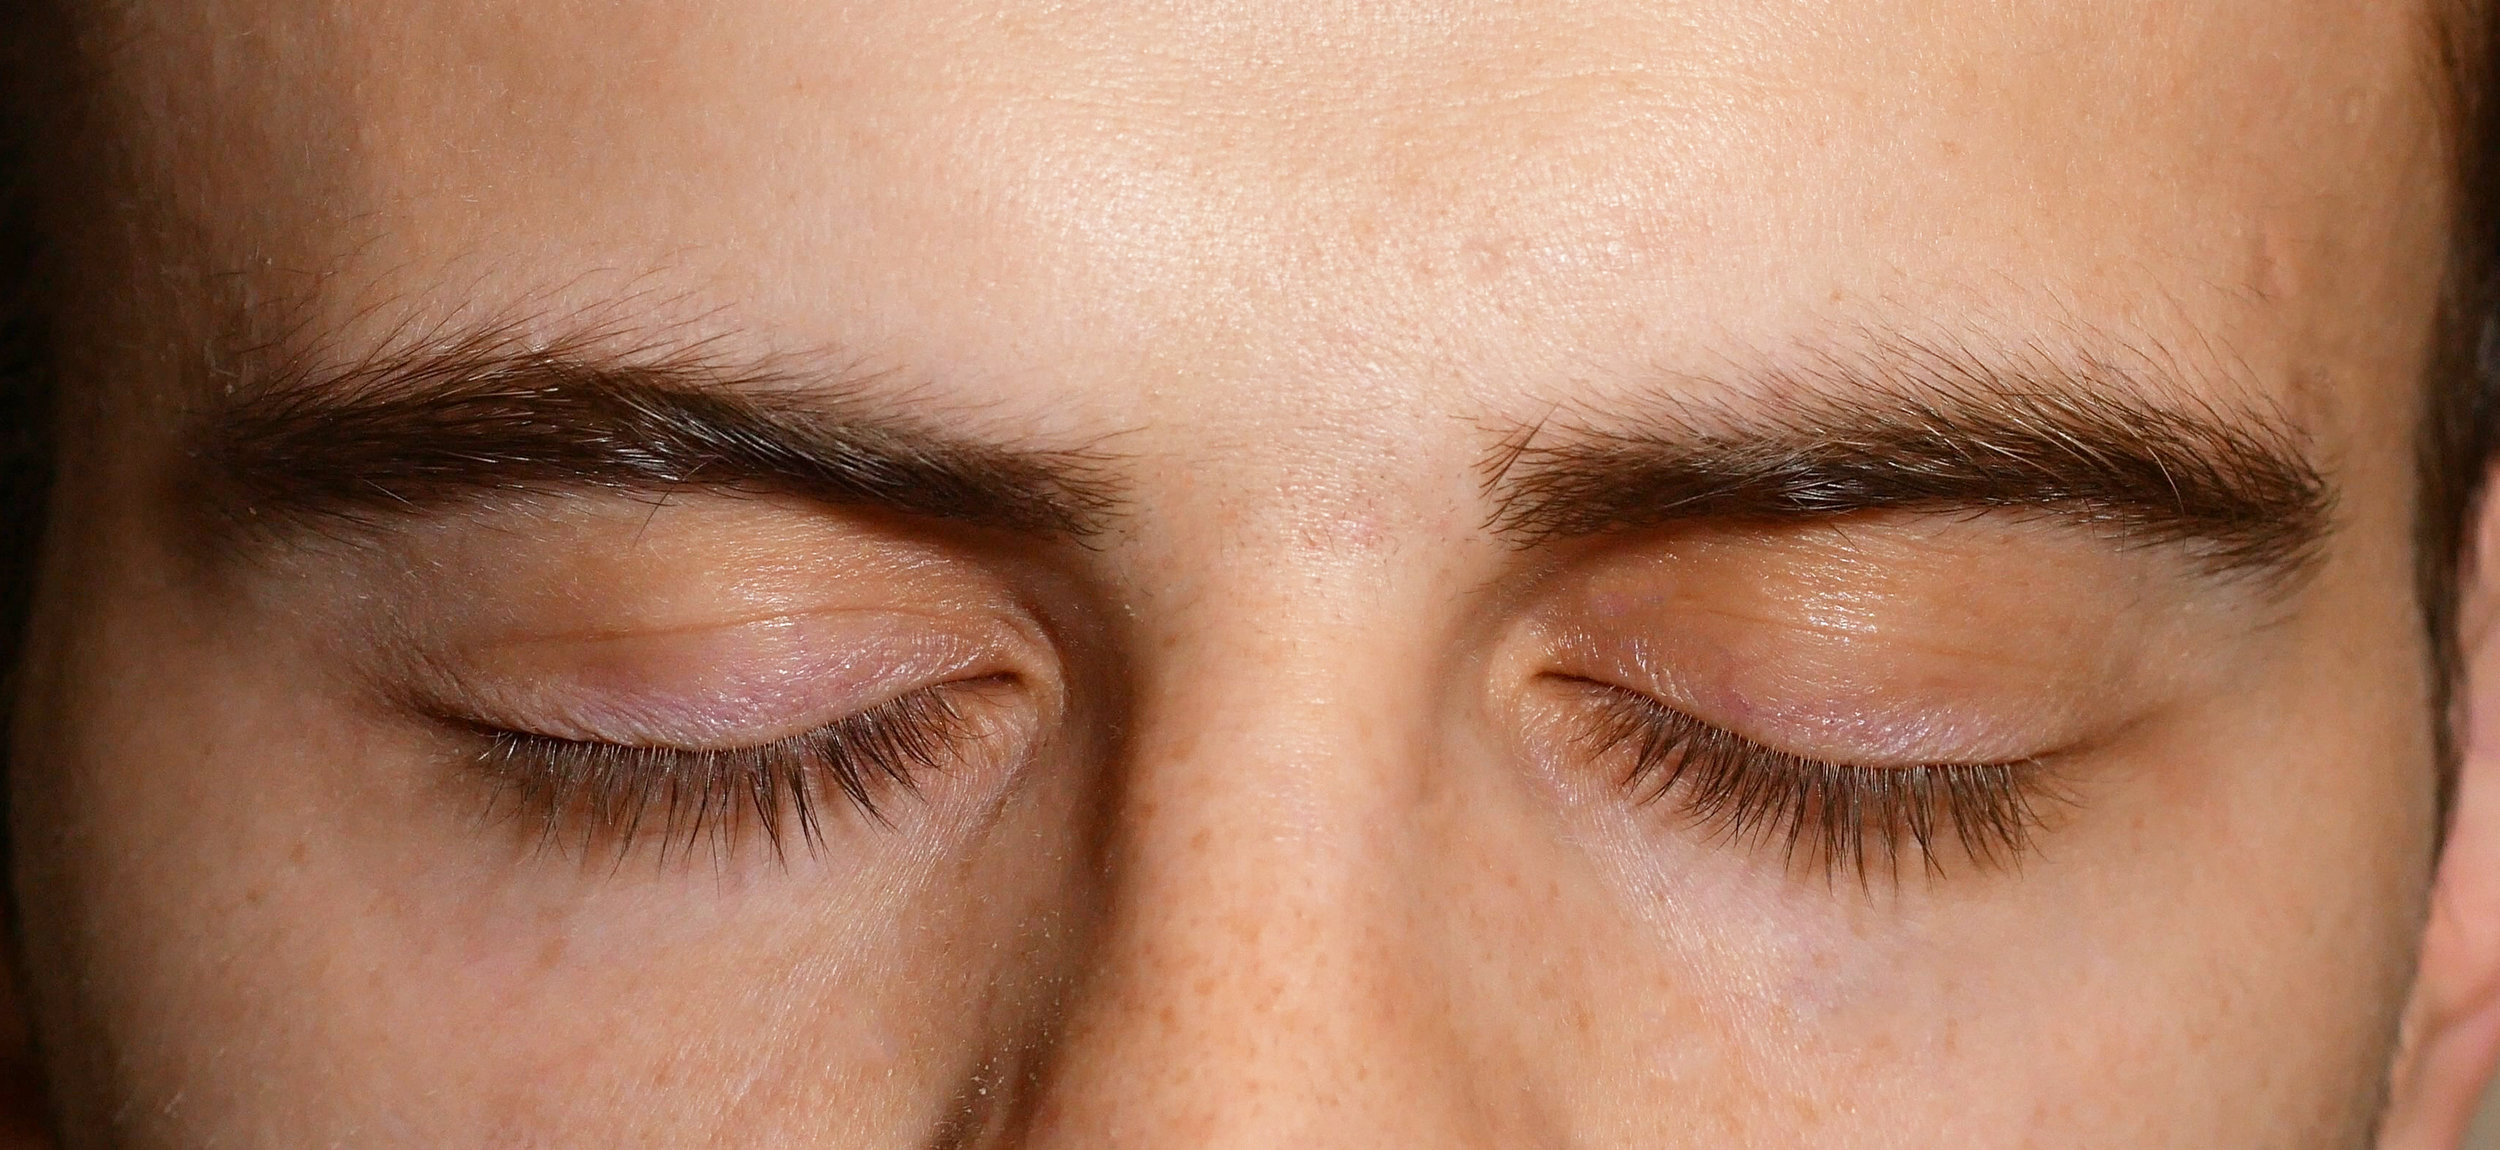 Male Eyelash Extensions - Natural Male Eyelash Extensions $1082 Week Touch Up $603 Week Touch Up $80Volume Male Eyelash Extension $1282 Week Touch Up $703 Week Touch Up $90